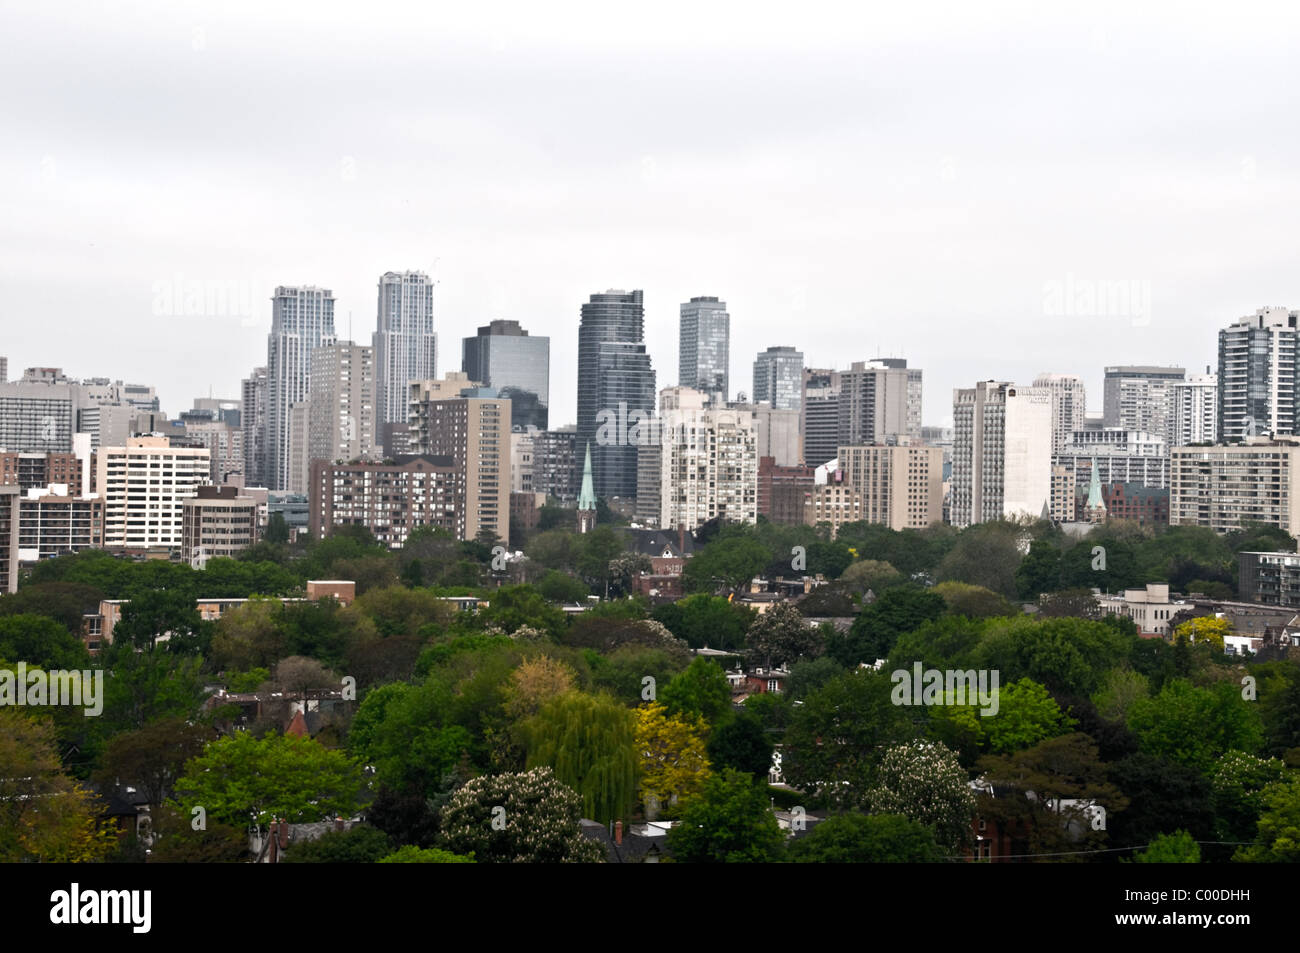 A view of downtown Toronto condo buildings along Yonge Street, and the neighbourhood of Cabbagetown in the foreground. - Stock Image